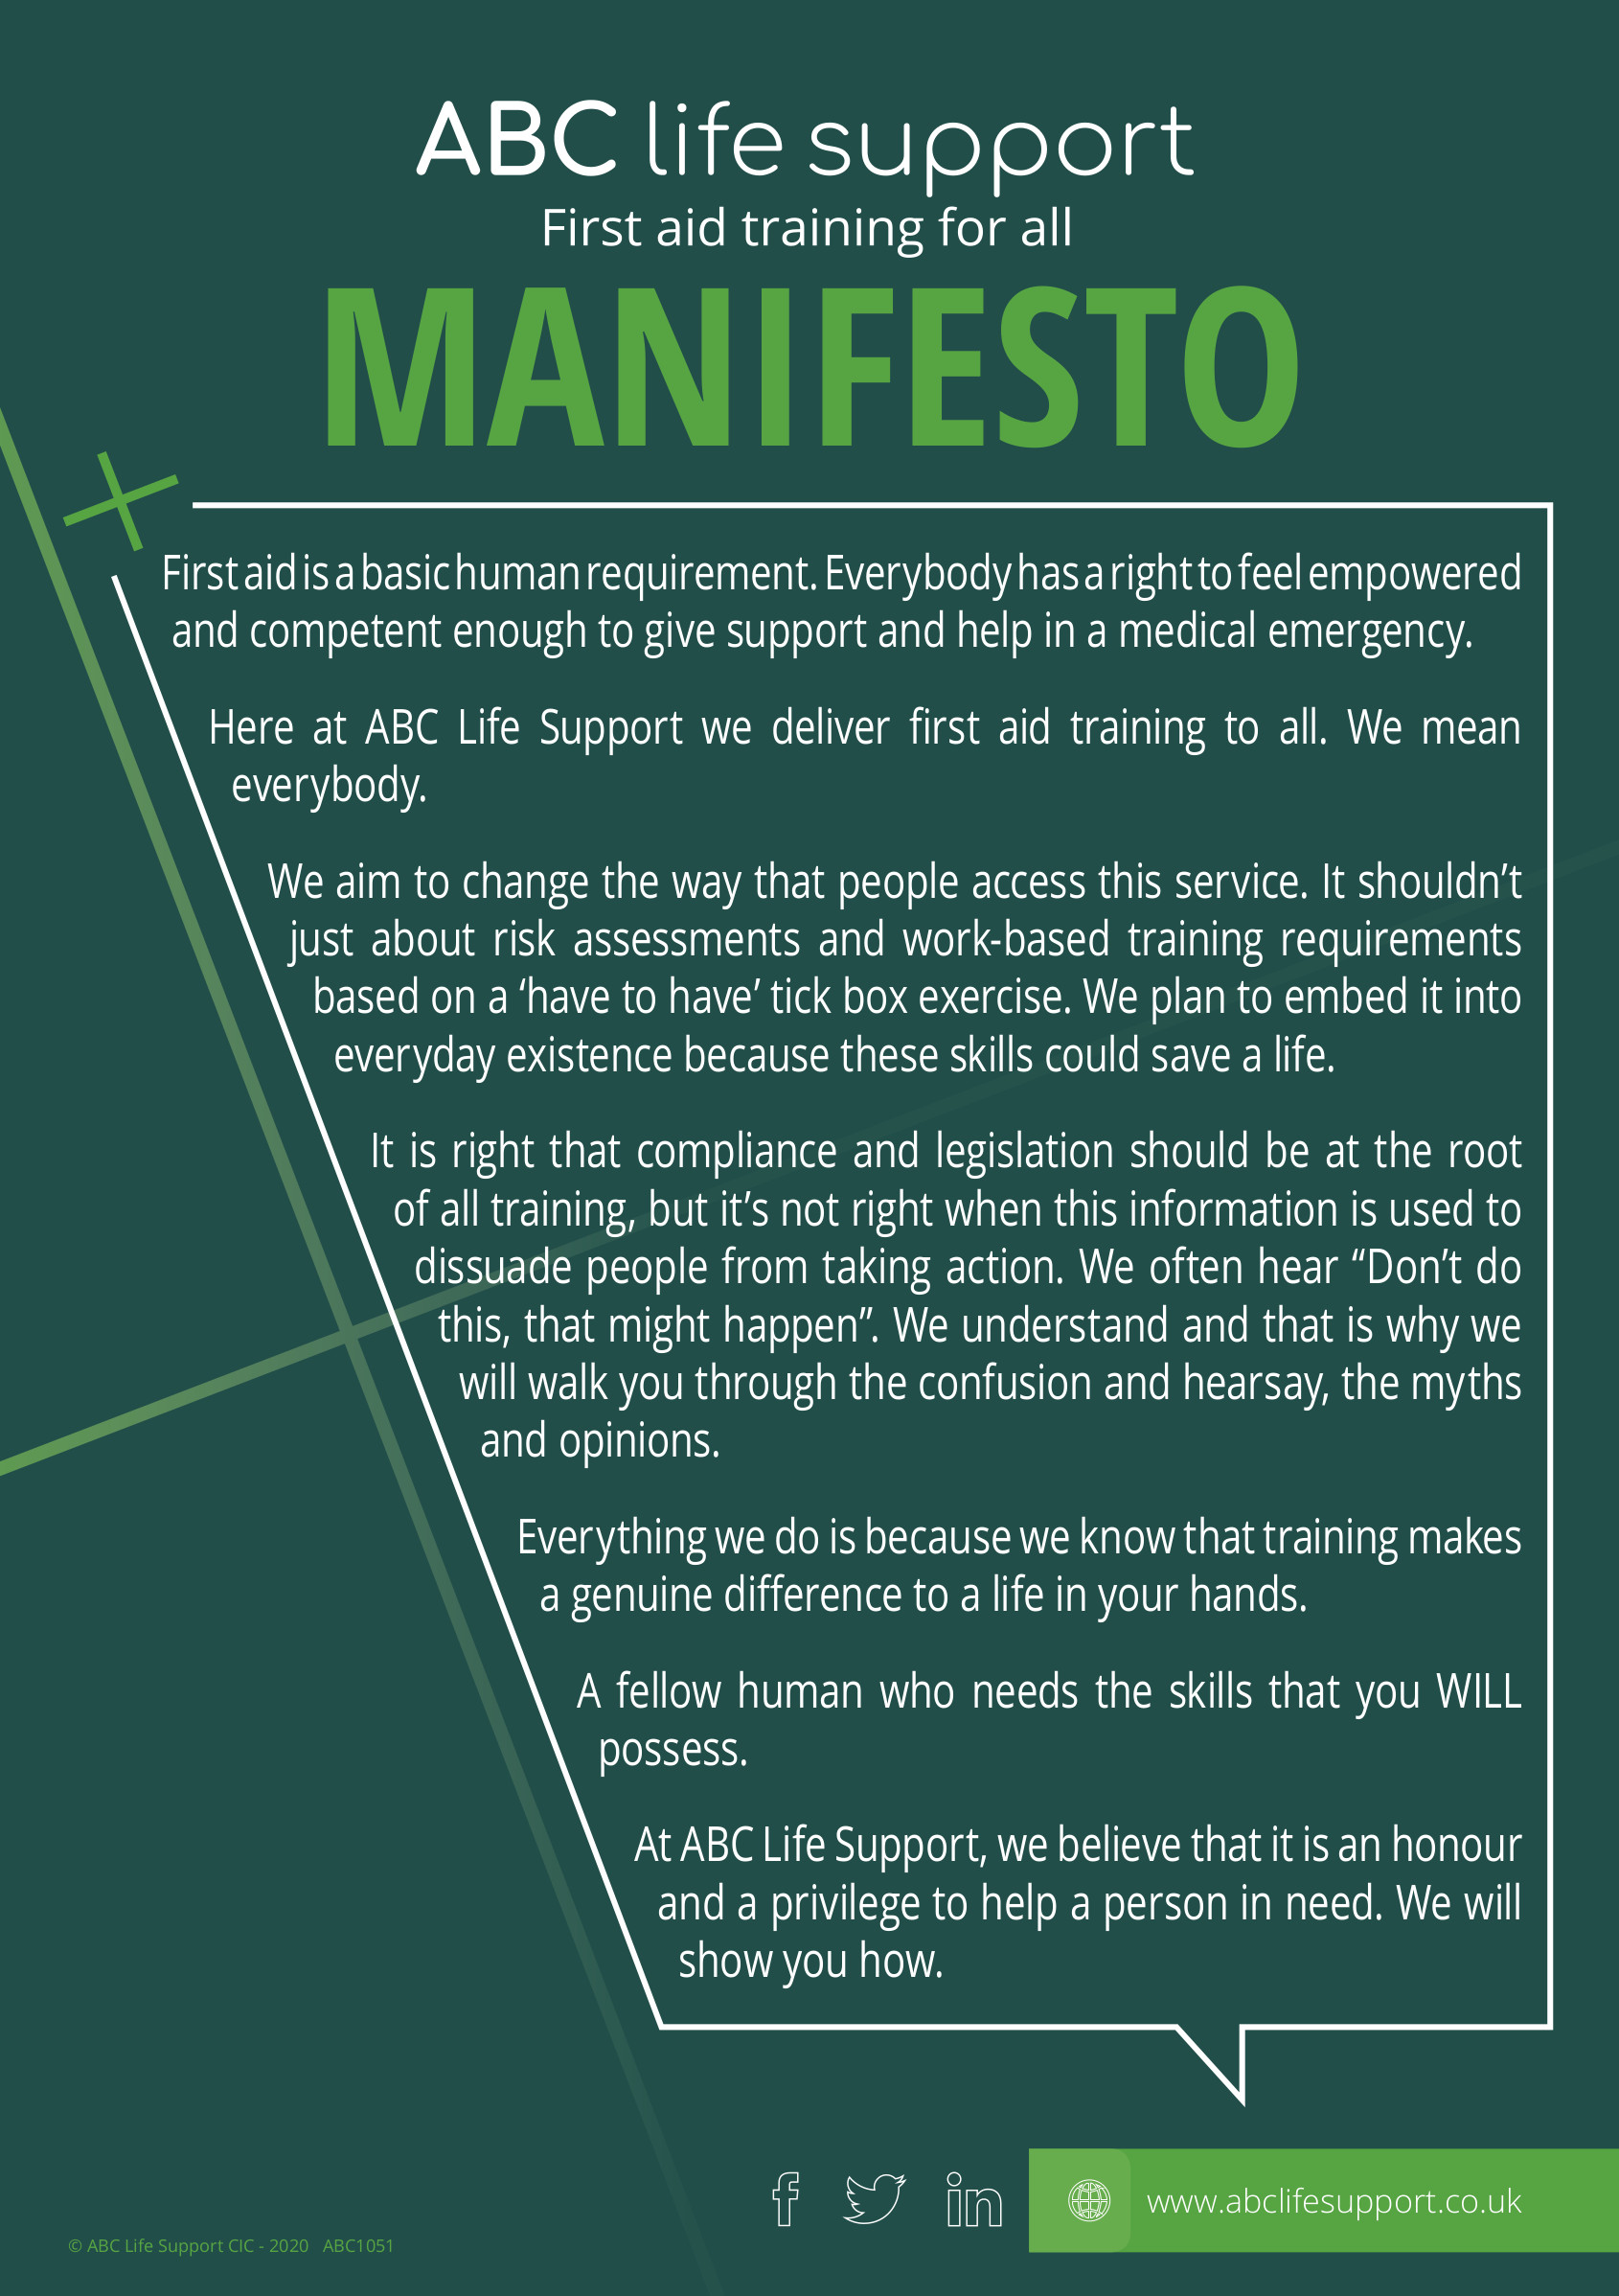 ABC Life Support CIC Manifesto